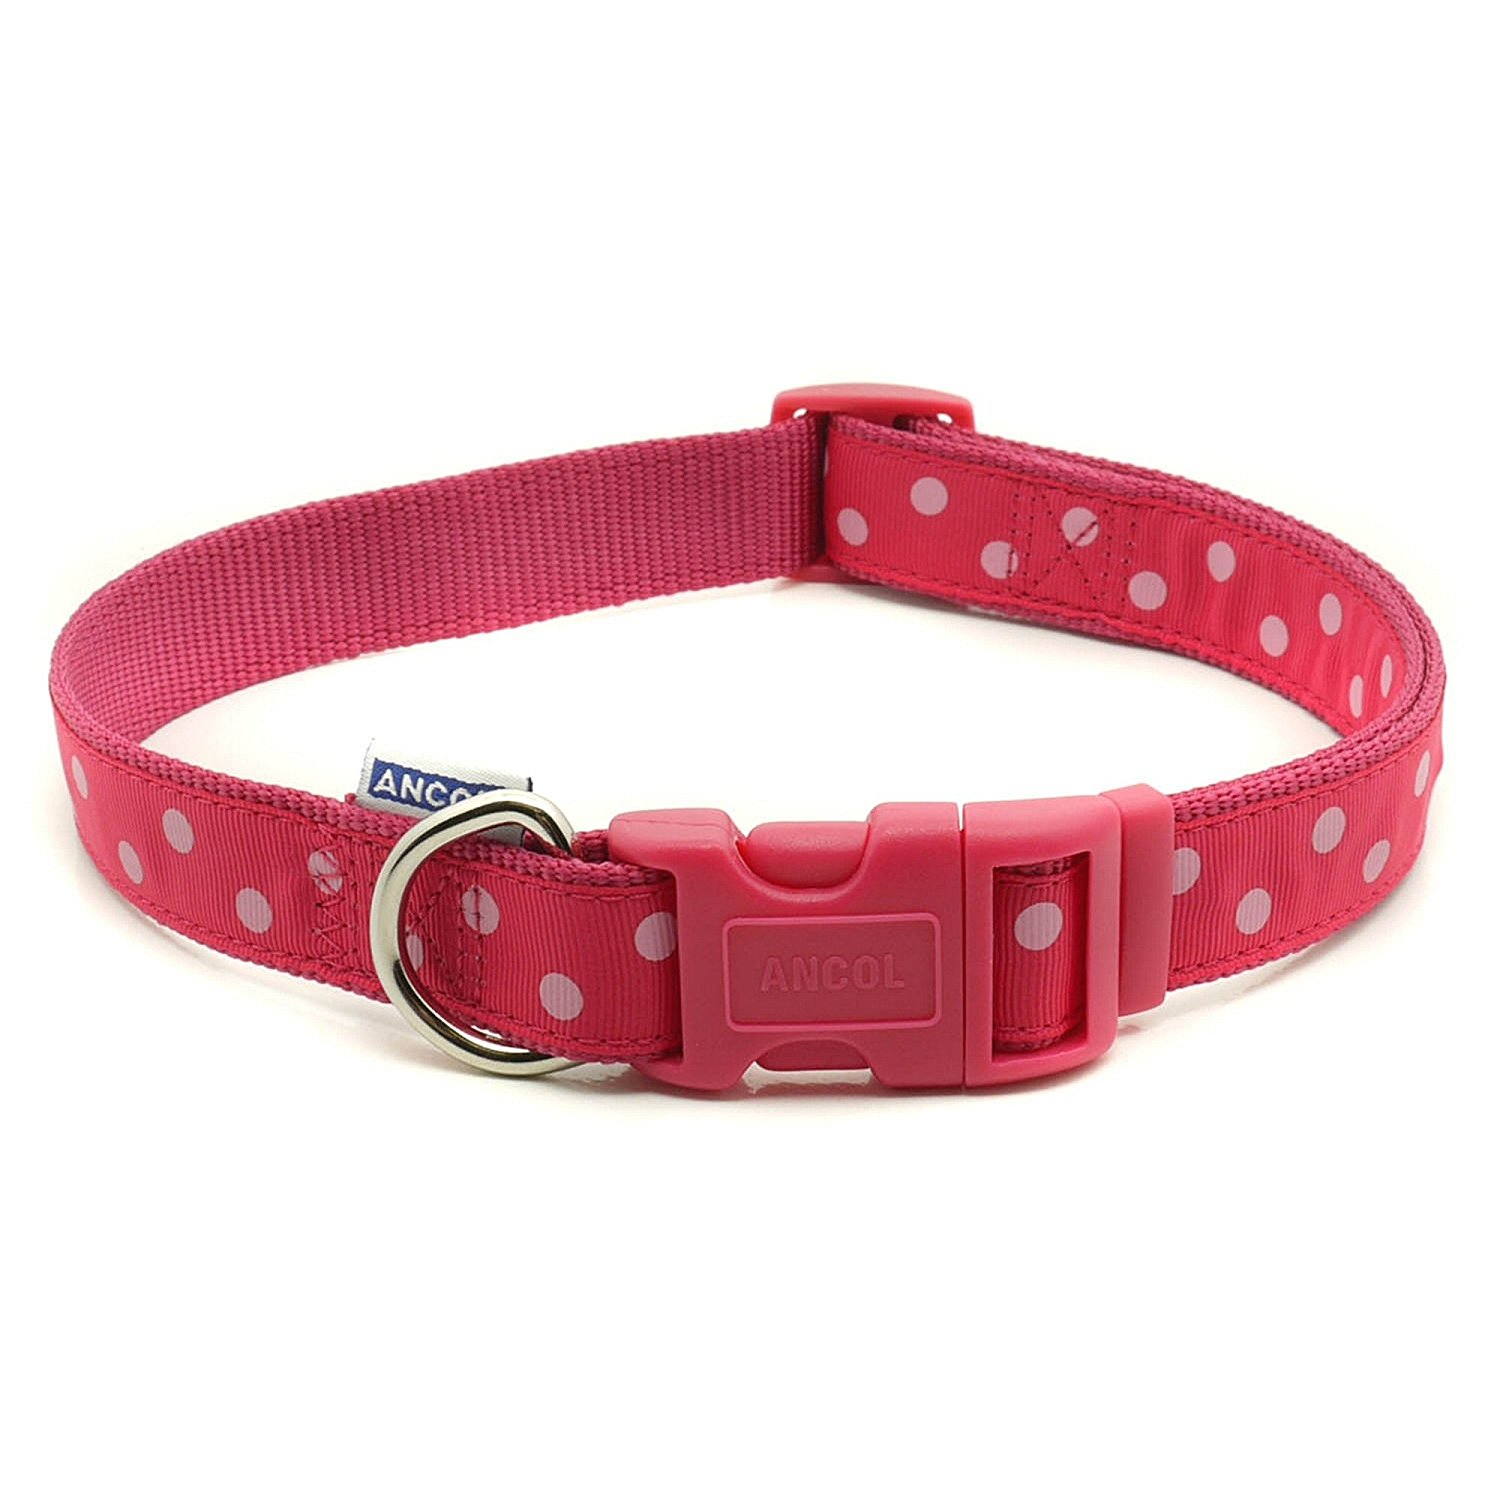 Amazon.com : Ancol Pet Products Indulgence Adjustable Vintage Polka Dot Dog Collar (Size 5-9) (Raspberry/Pink) : Pet Supplies